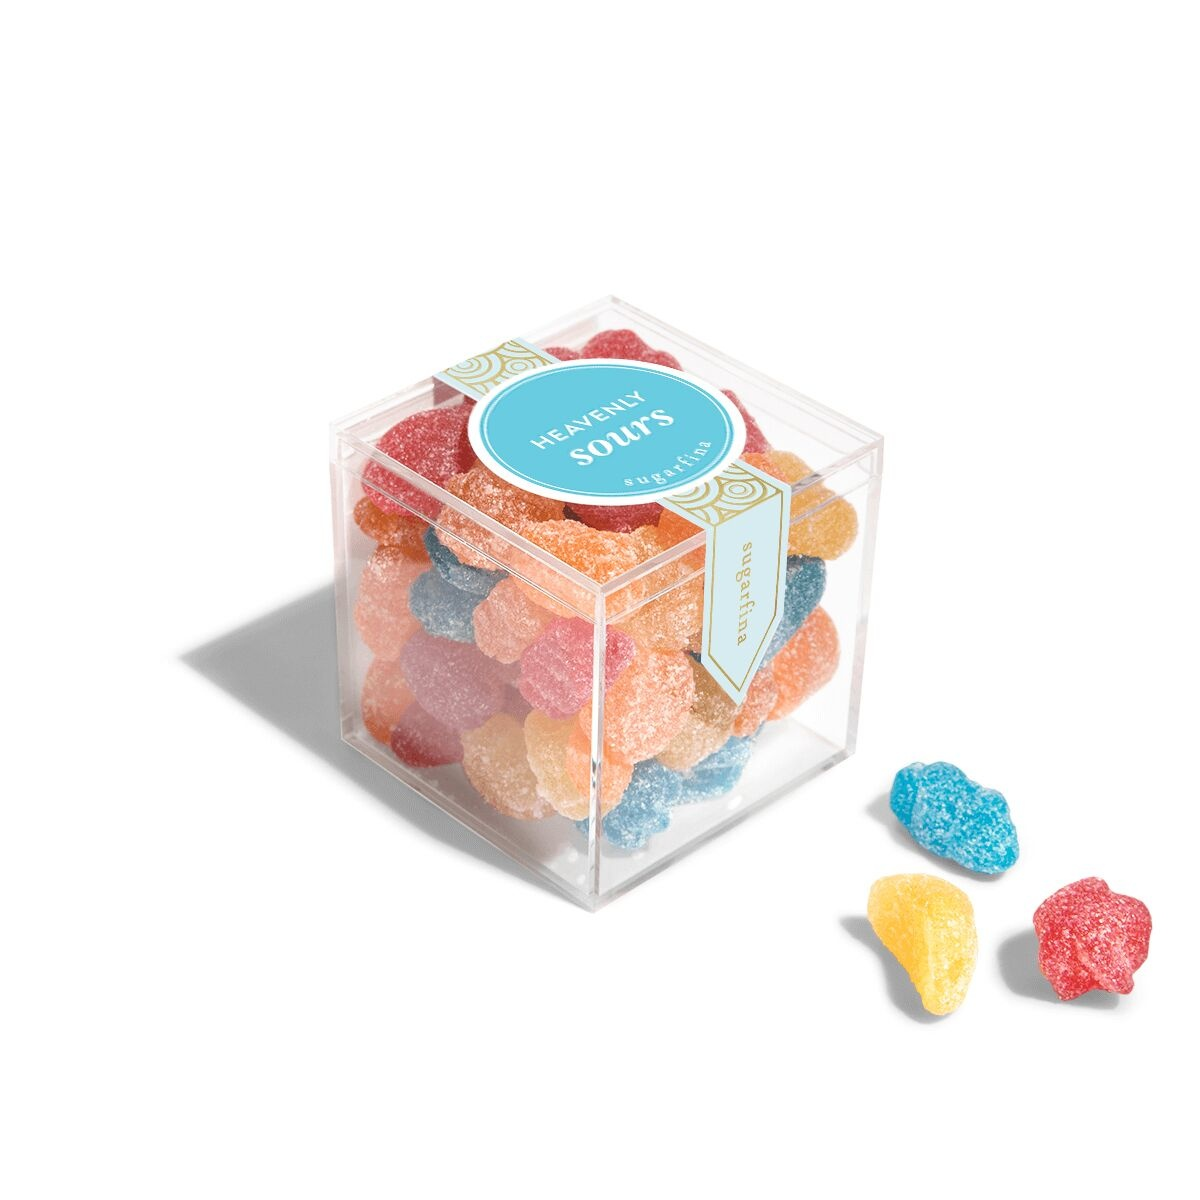 Sugarfina Sugarfina Heavenly Sours Gummies